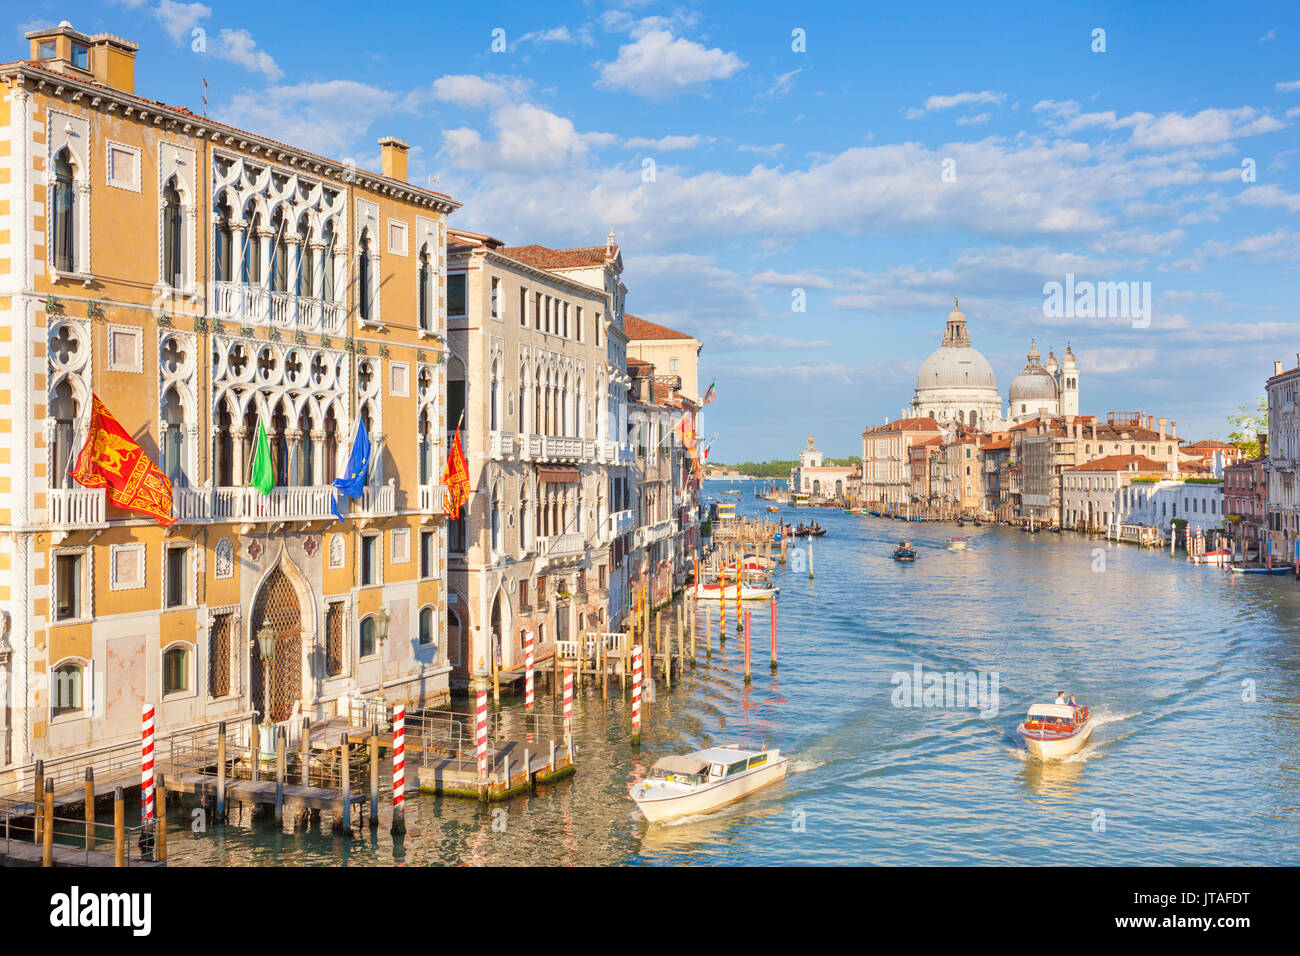 Vaporettos (water taxis) passing Palazzo Cavalli-Franchetti, on the Grand Canal, Venice, UNESCO, Veneto, Italy, Europe - Stock Image